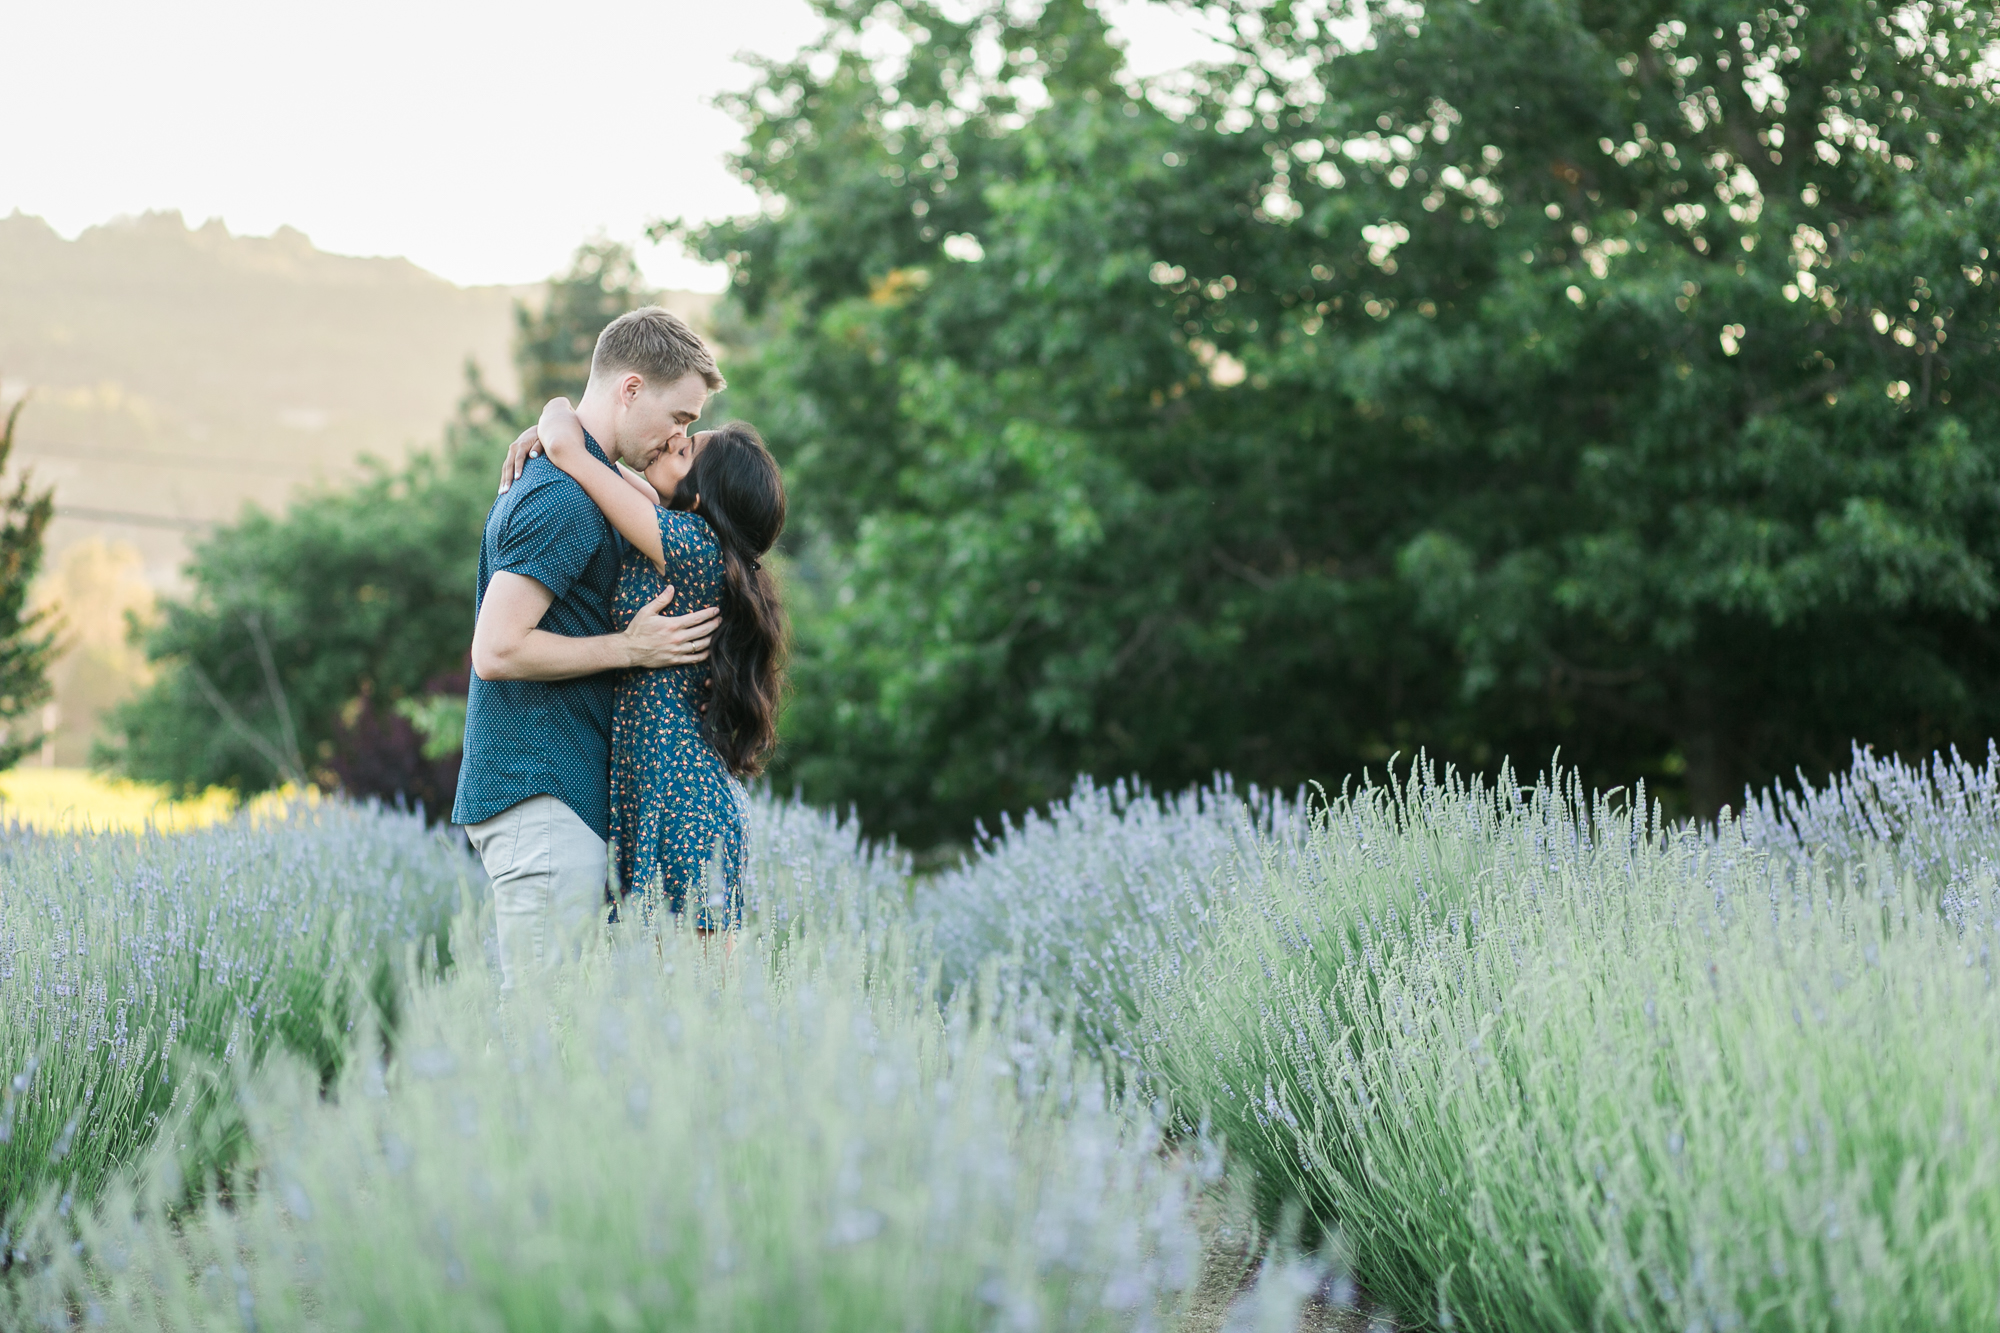 santa rosa engagement photographer, Santa rosa photographer, engagement photographer, matanzas creek engagement, lavender field engagement, sonoma county engagement photographer, sonoma wedding photographer, best wedding photographer, best engagement photographer, where to do engagement photos sonoma county, maria villano photography